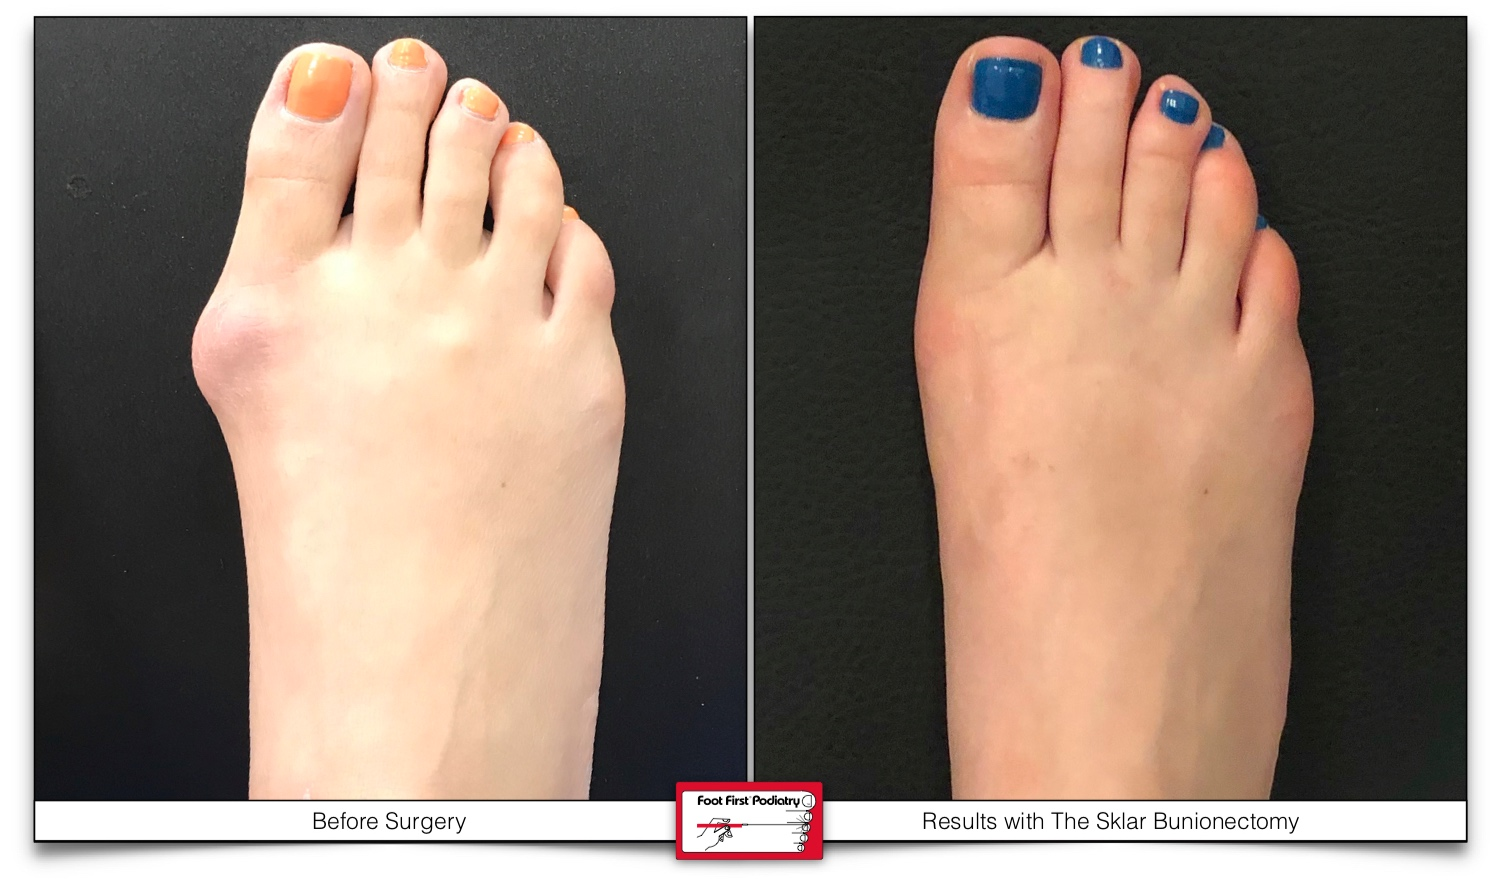 Before & After results with the Sklar Bunionectomy